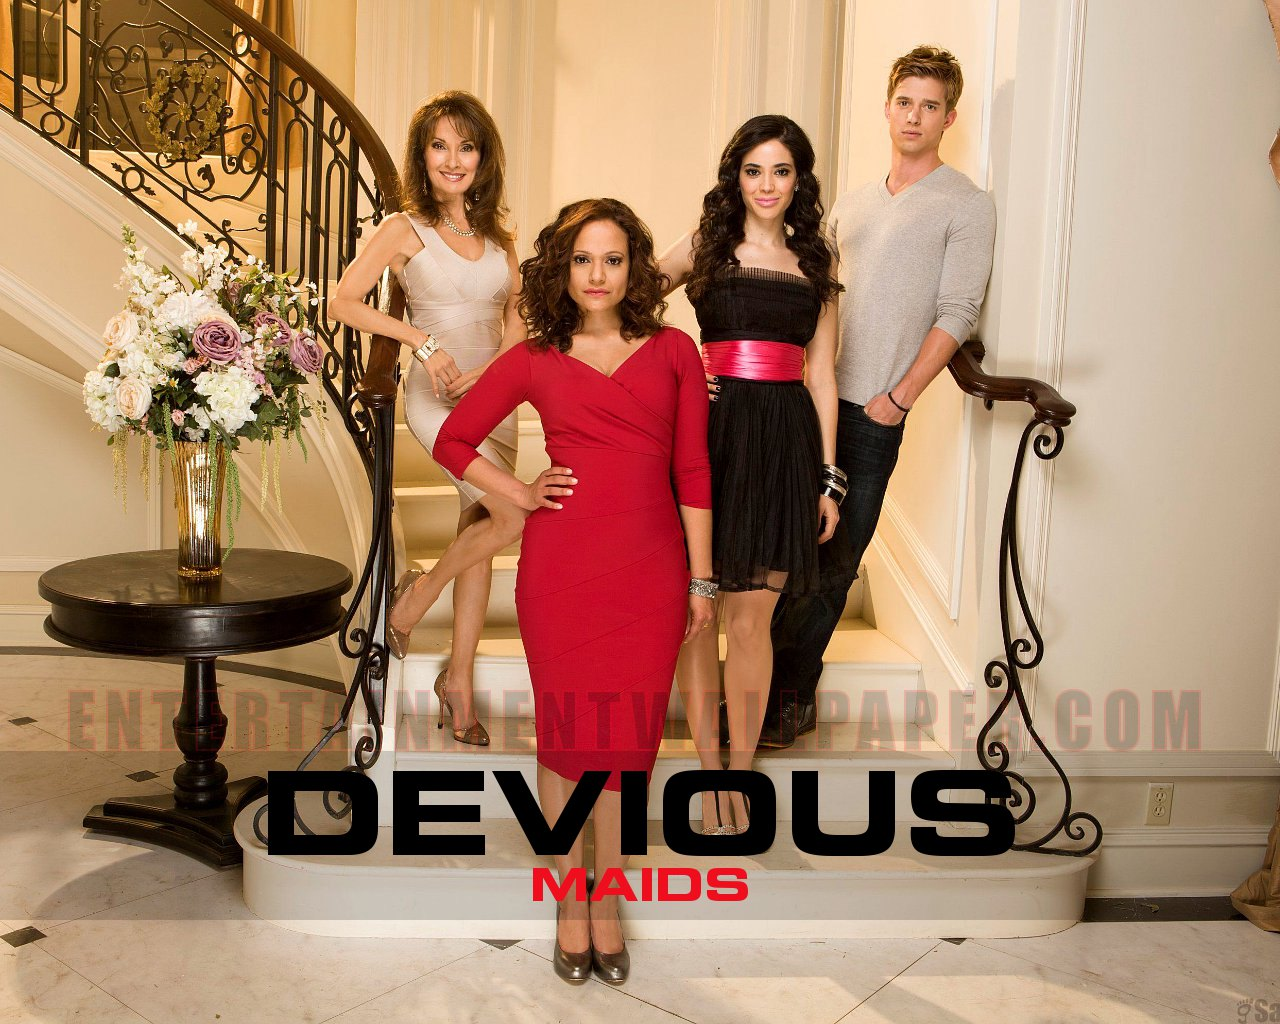 Michigan State Hd Wallpaper Devious Maids Extras Auditions For 2018